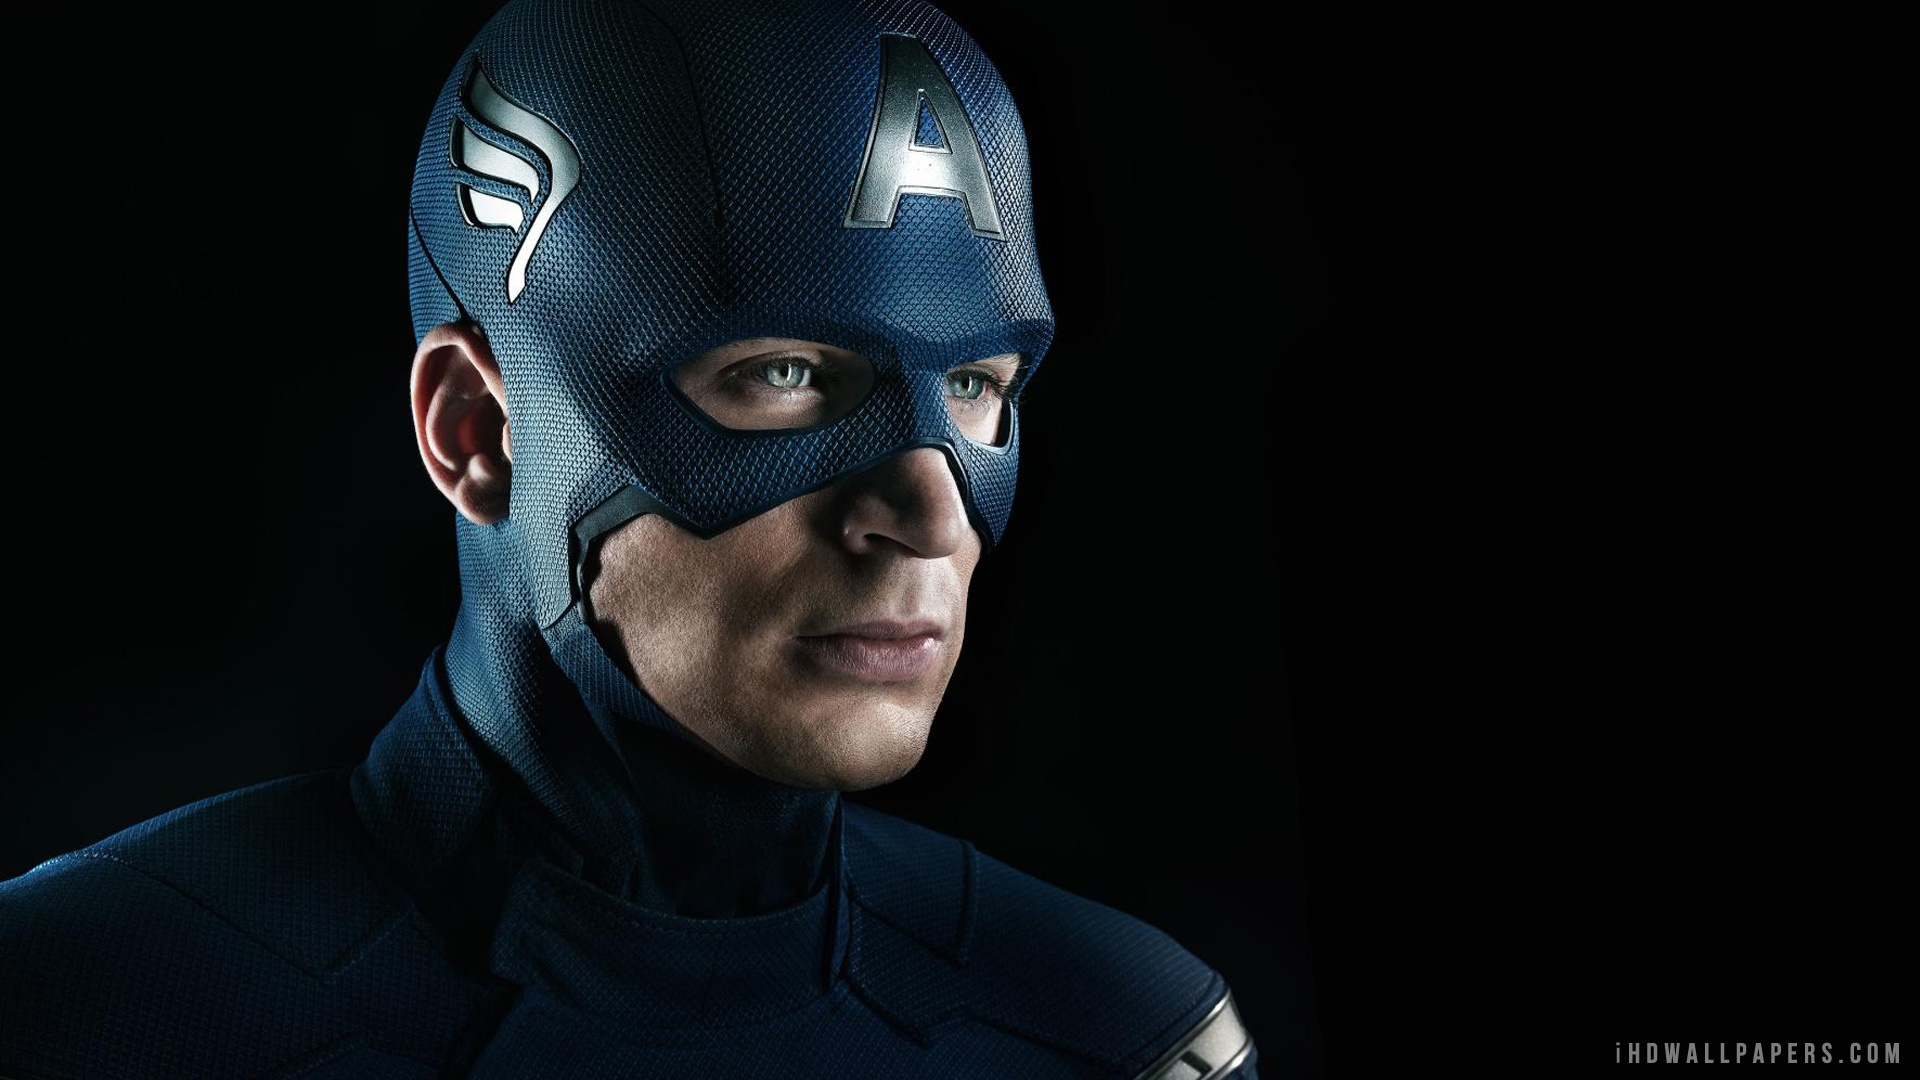 Captain America HD Wallpaper   iHD Wallpapers 1920x1080